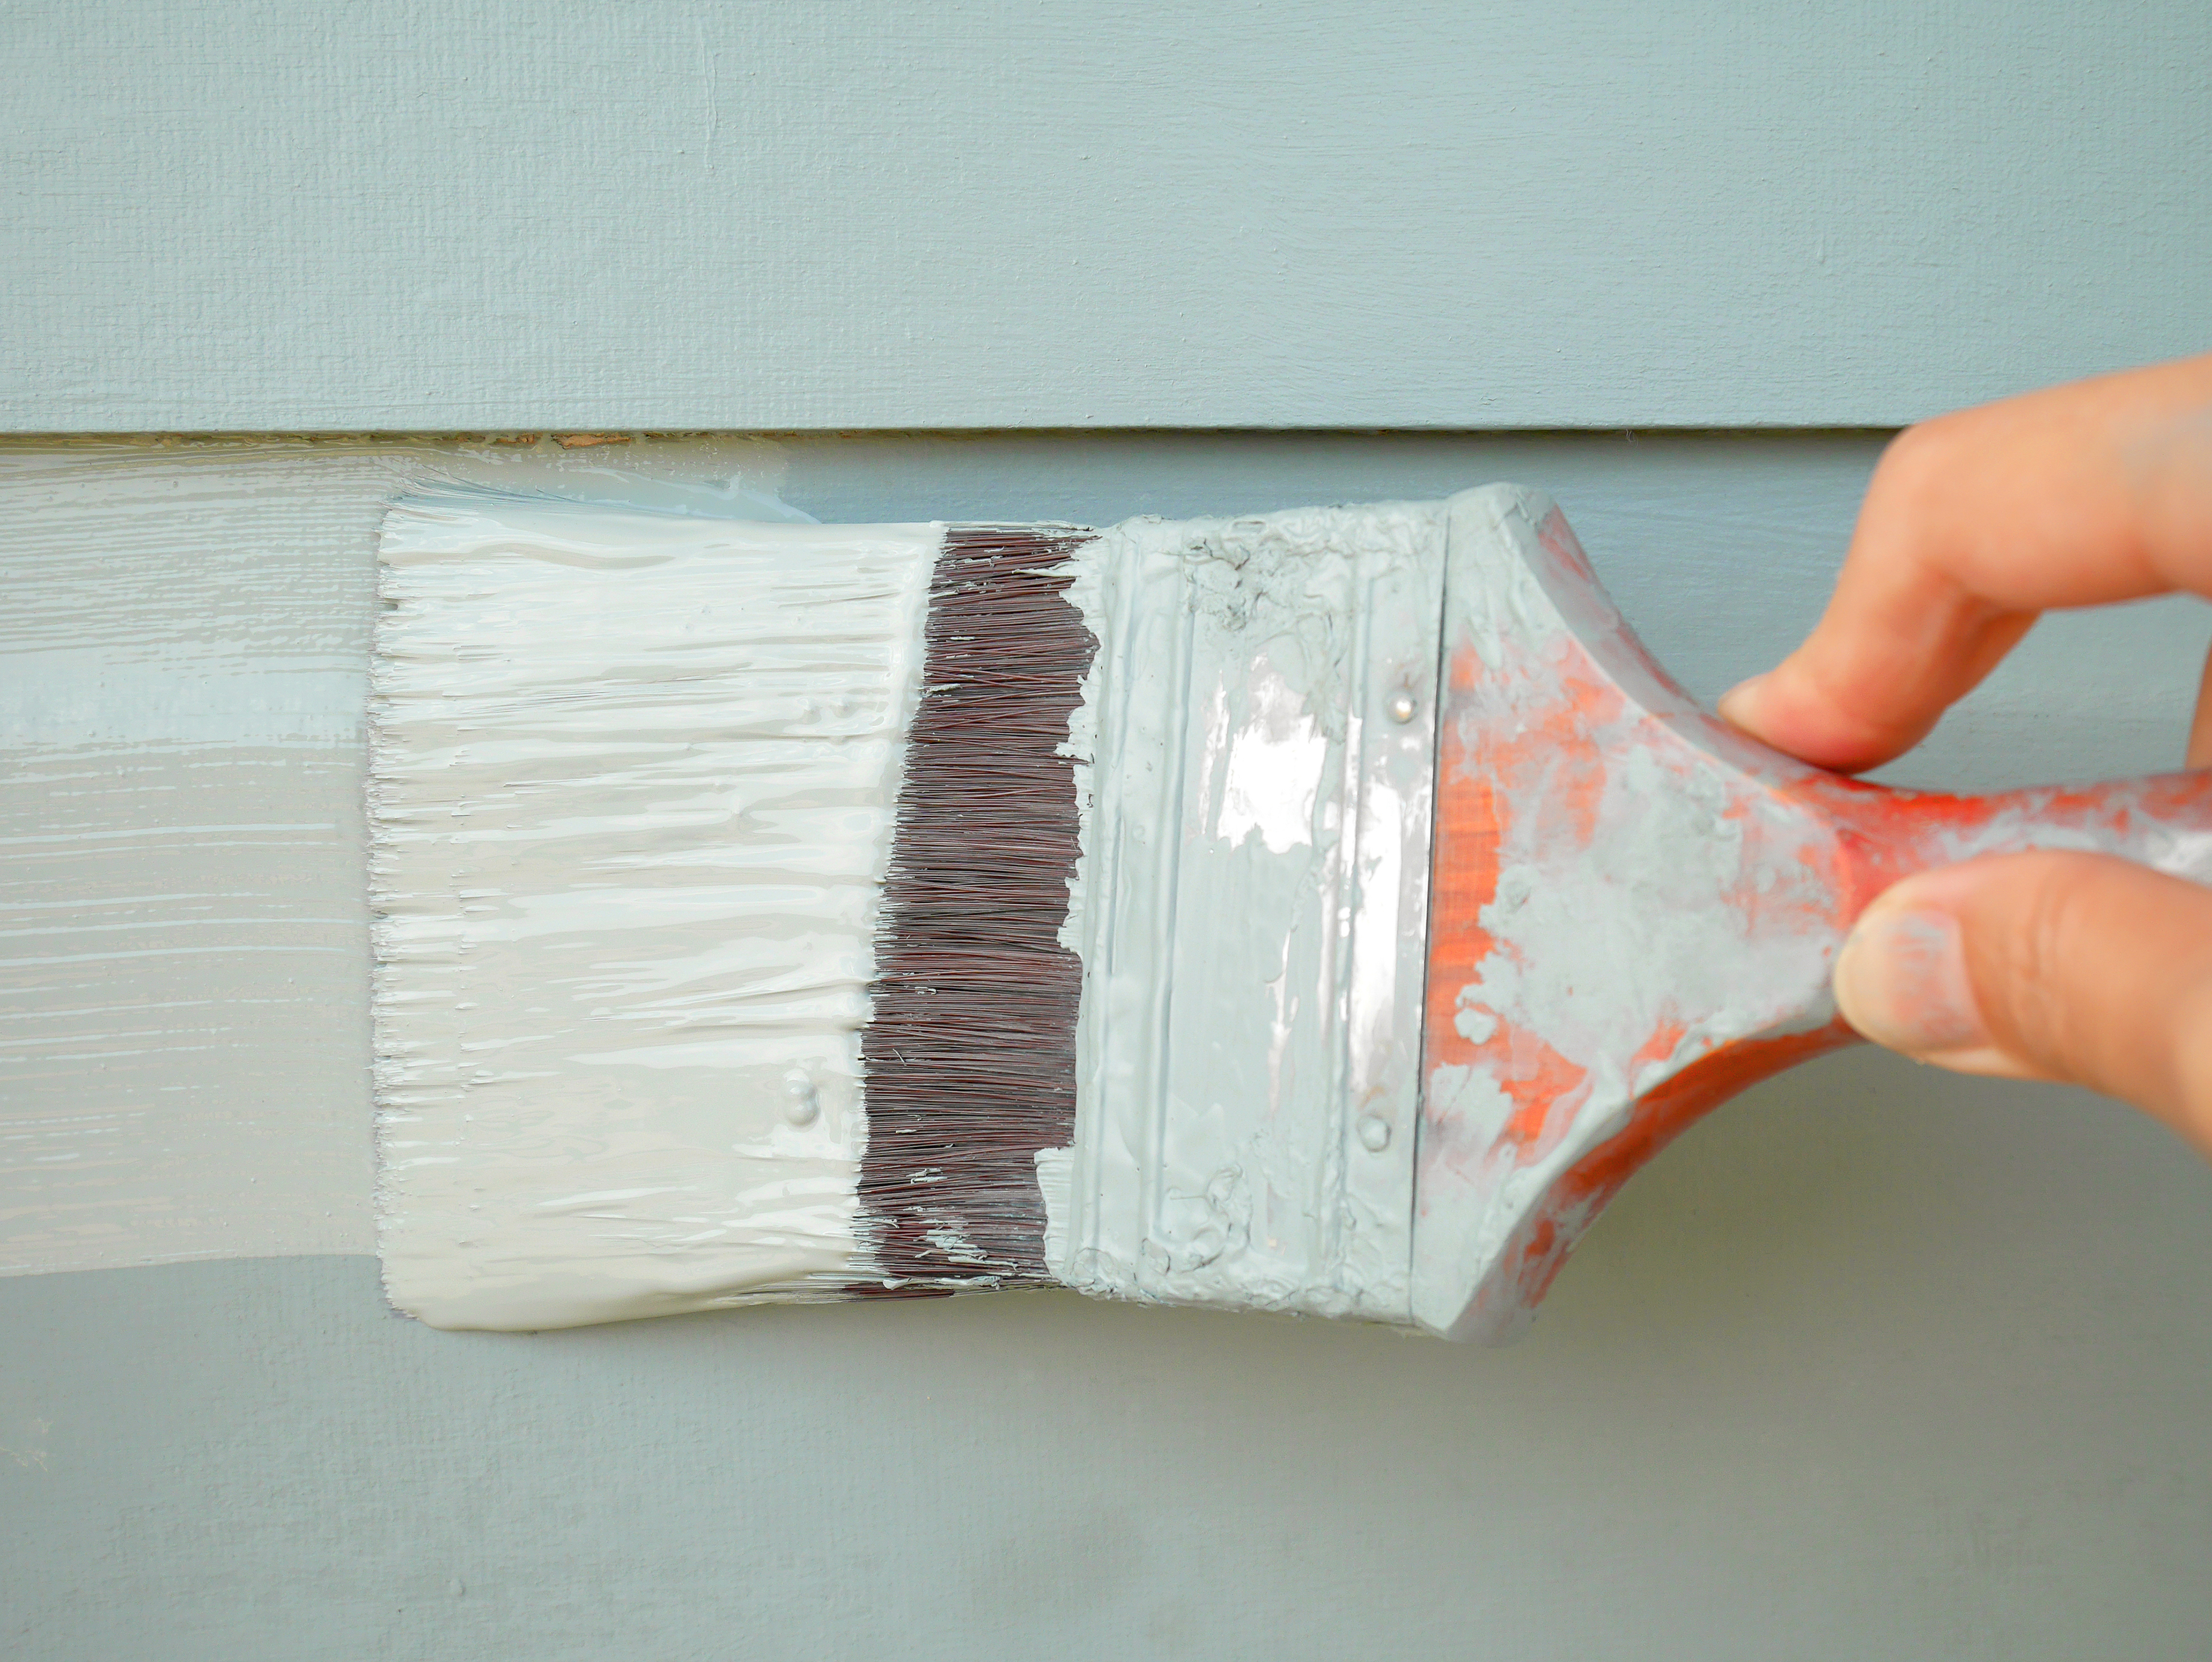 The Best Way to Paint Aluminum Siding | Hunker